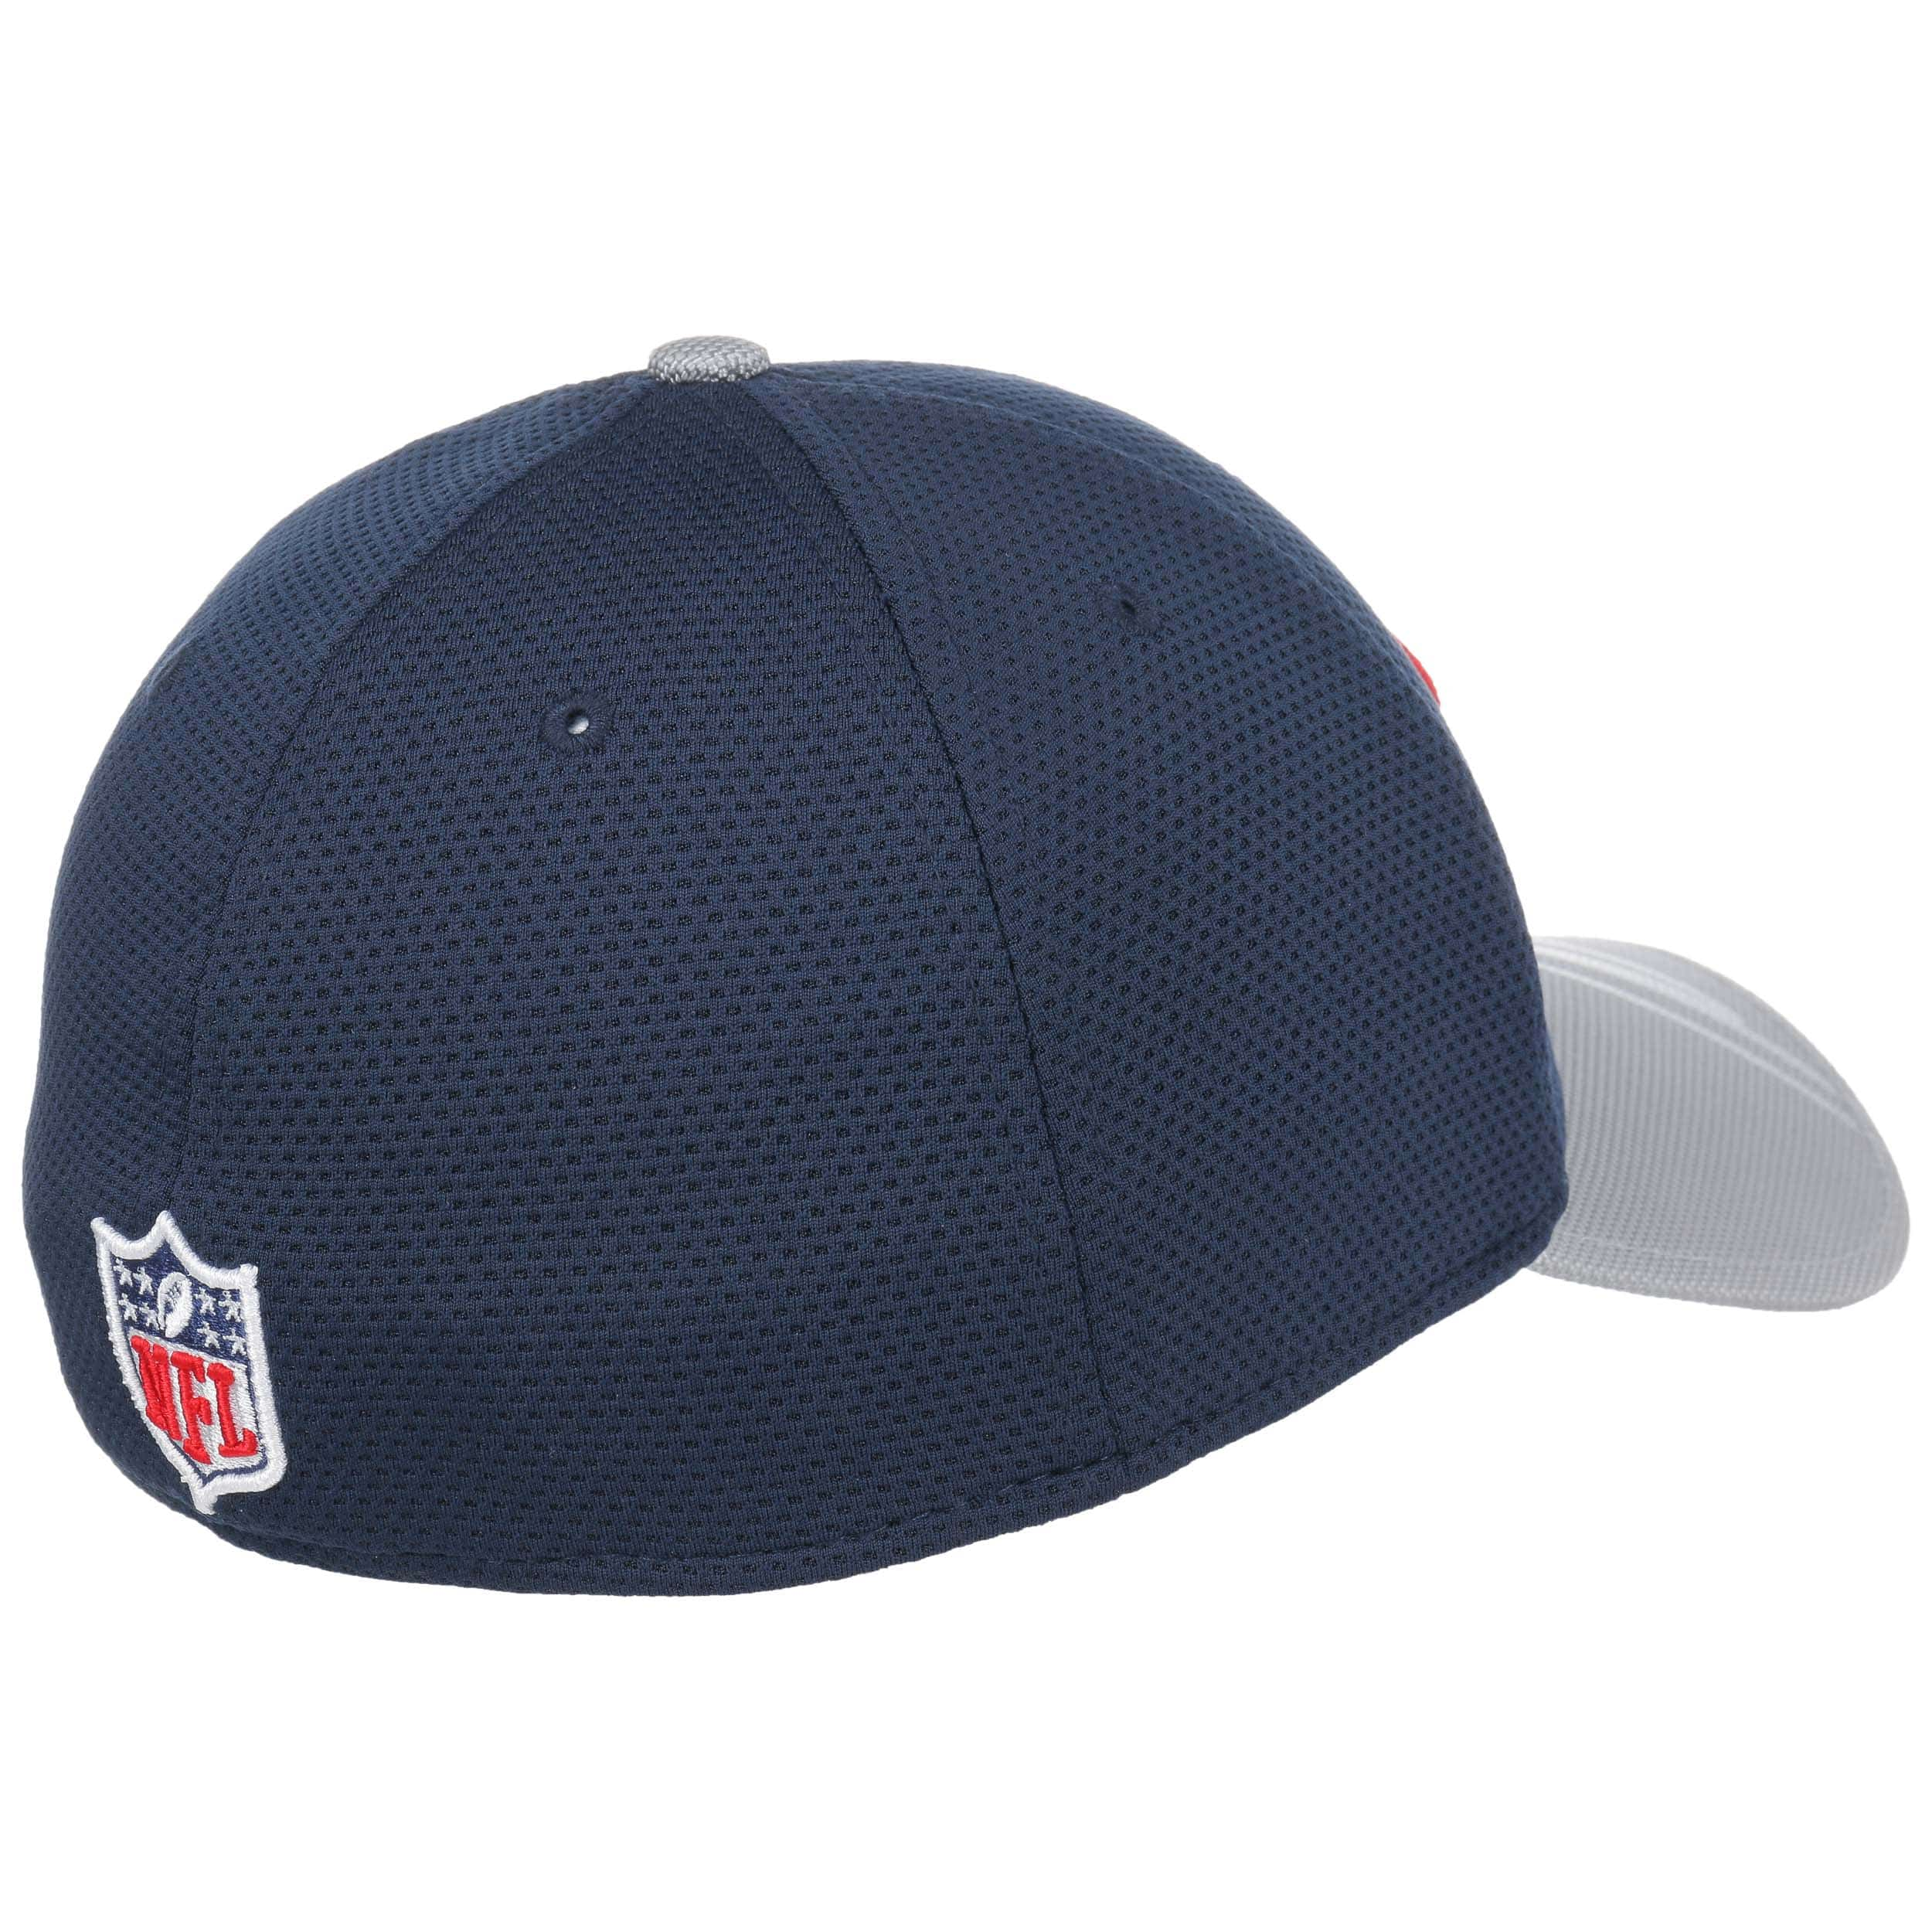 461ba2eb0 ... official store 39thirty patriots nfl cap by new era blue 3 4c107 abe1a